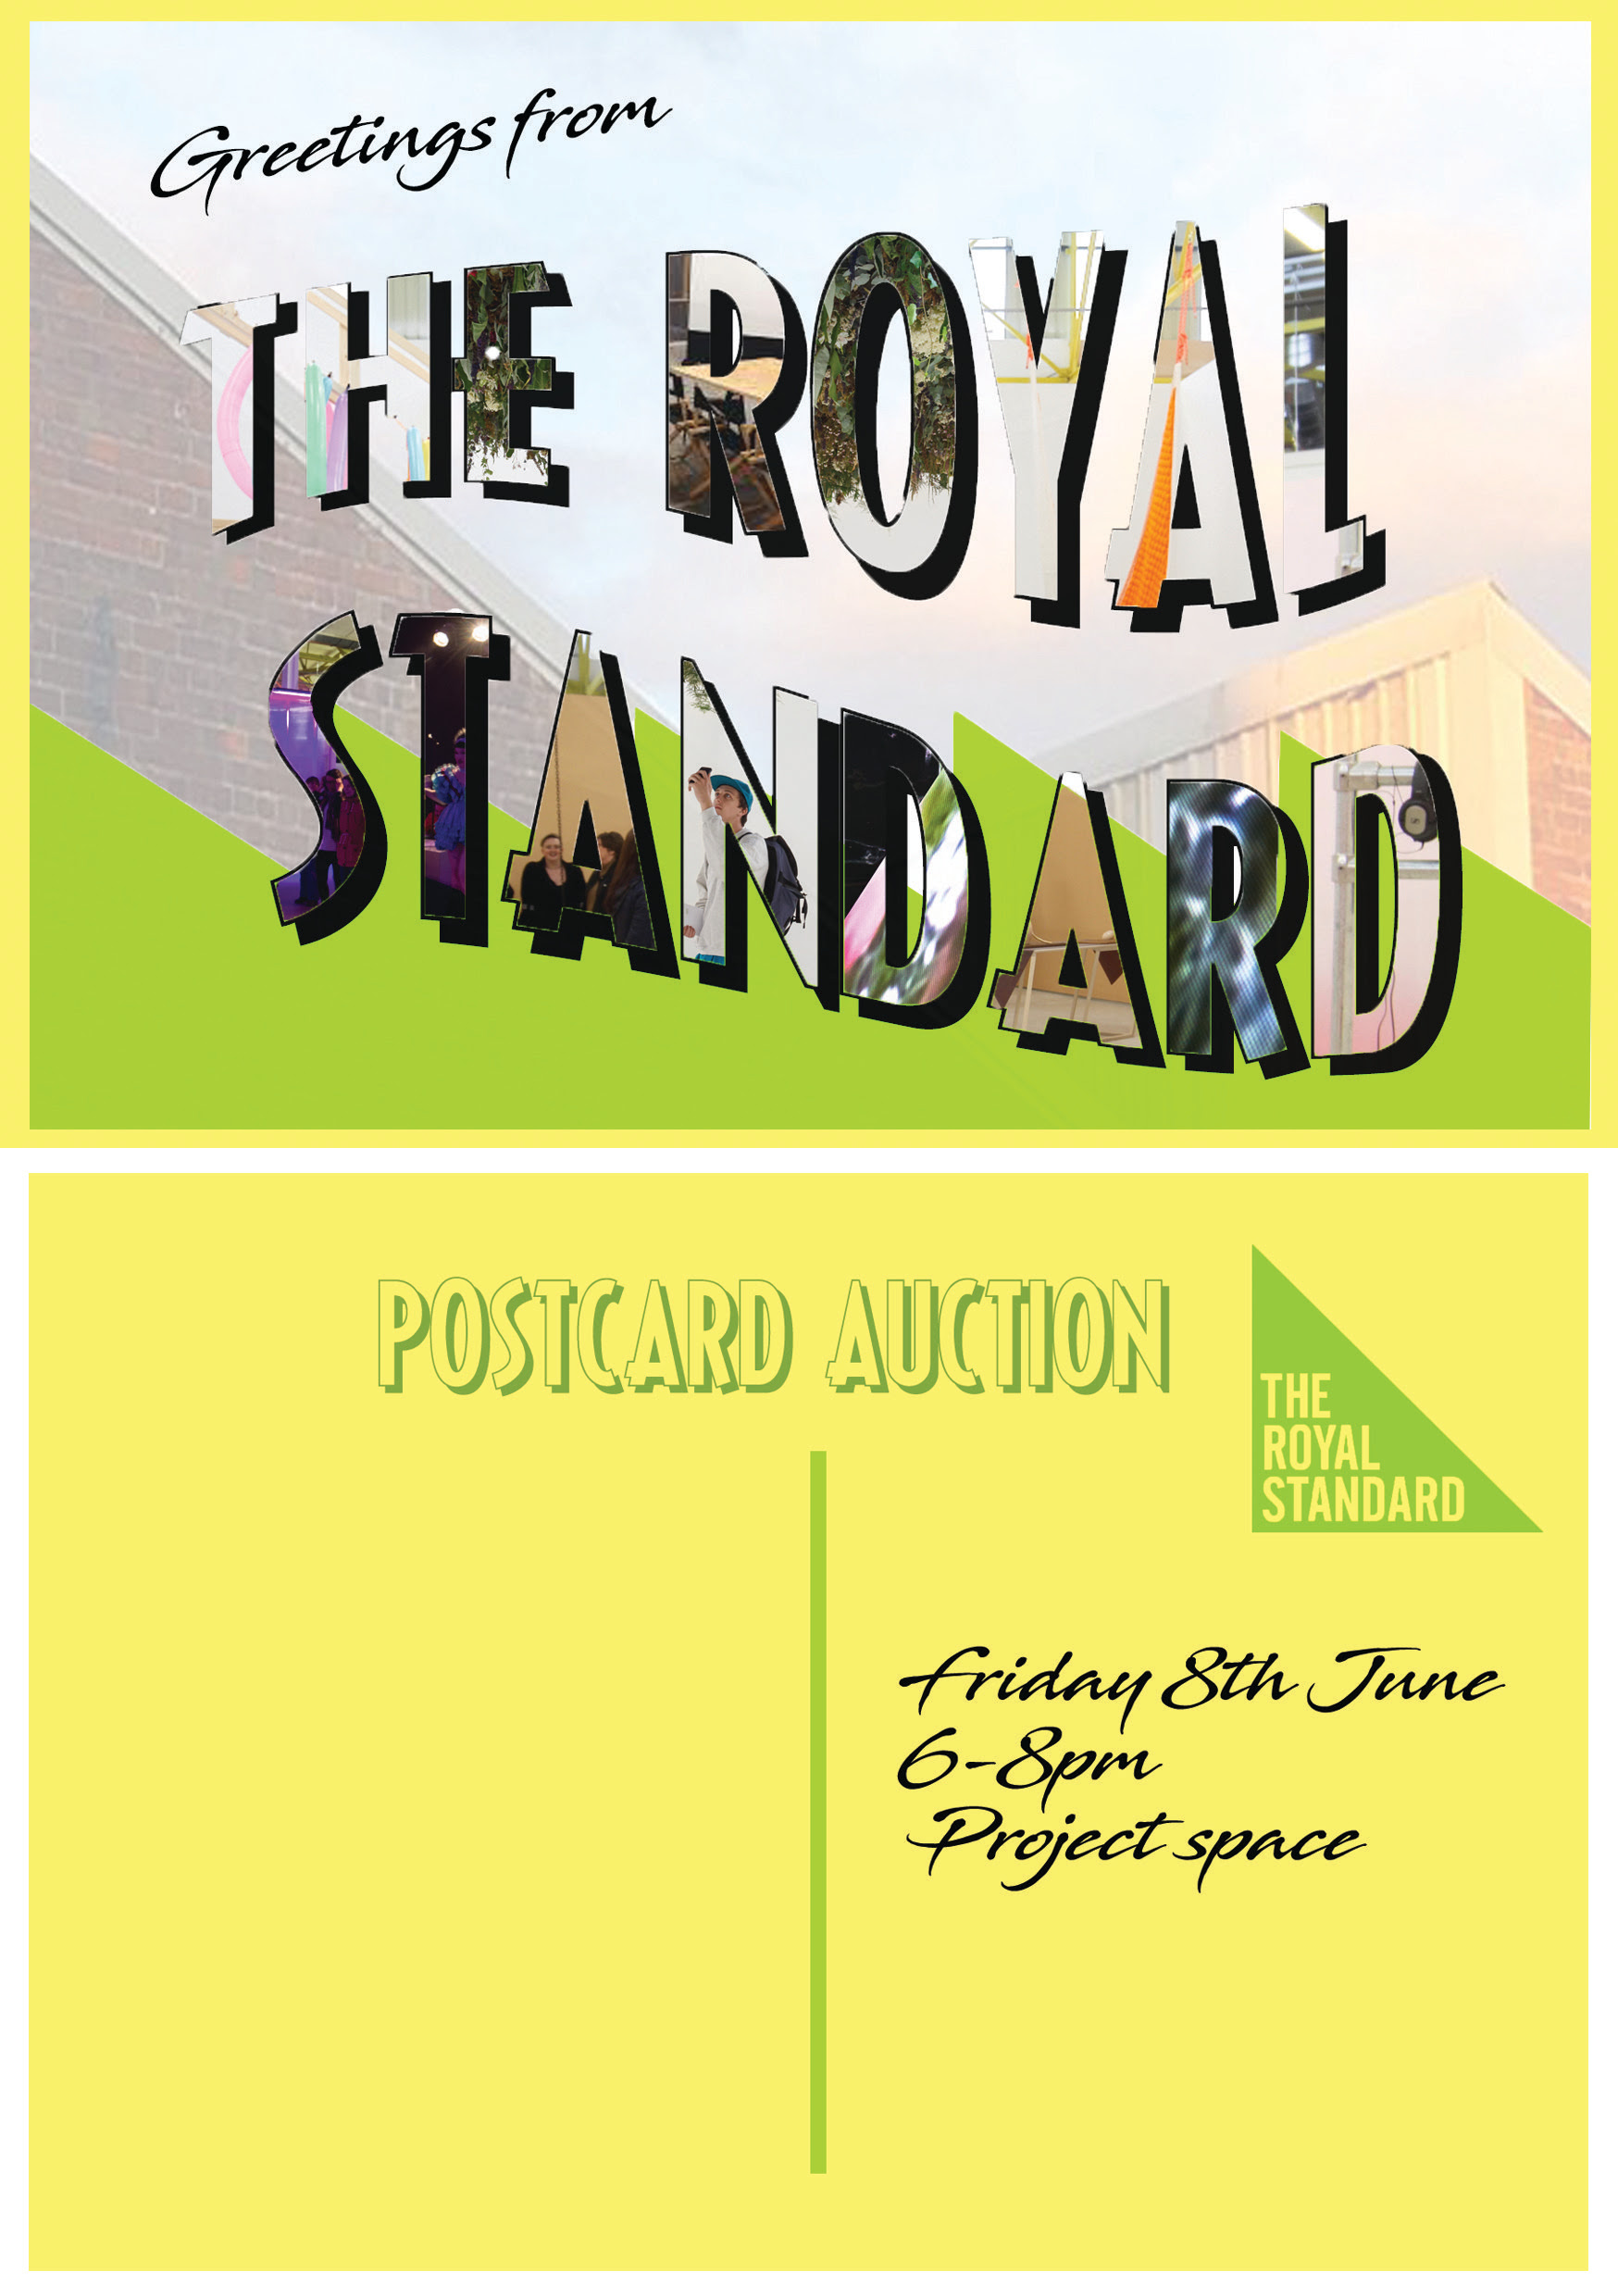 The Royal Standard: Postcard Auction